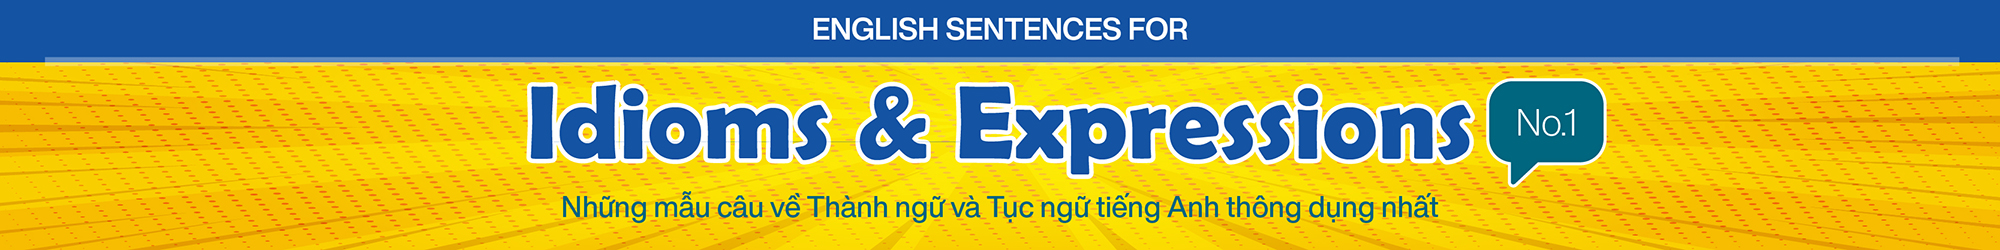 English Sentences for Idioms and Expressions (No.1) banner